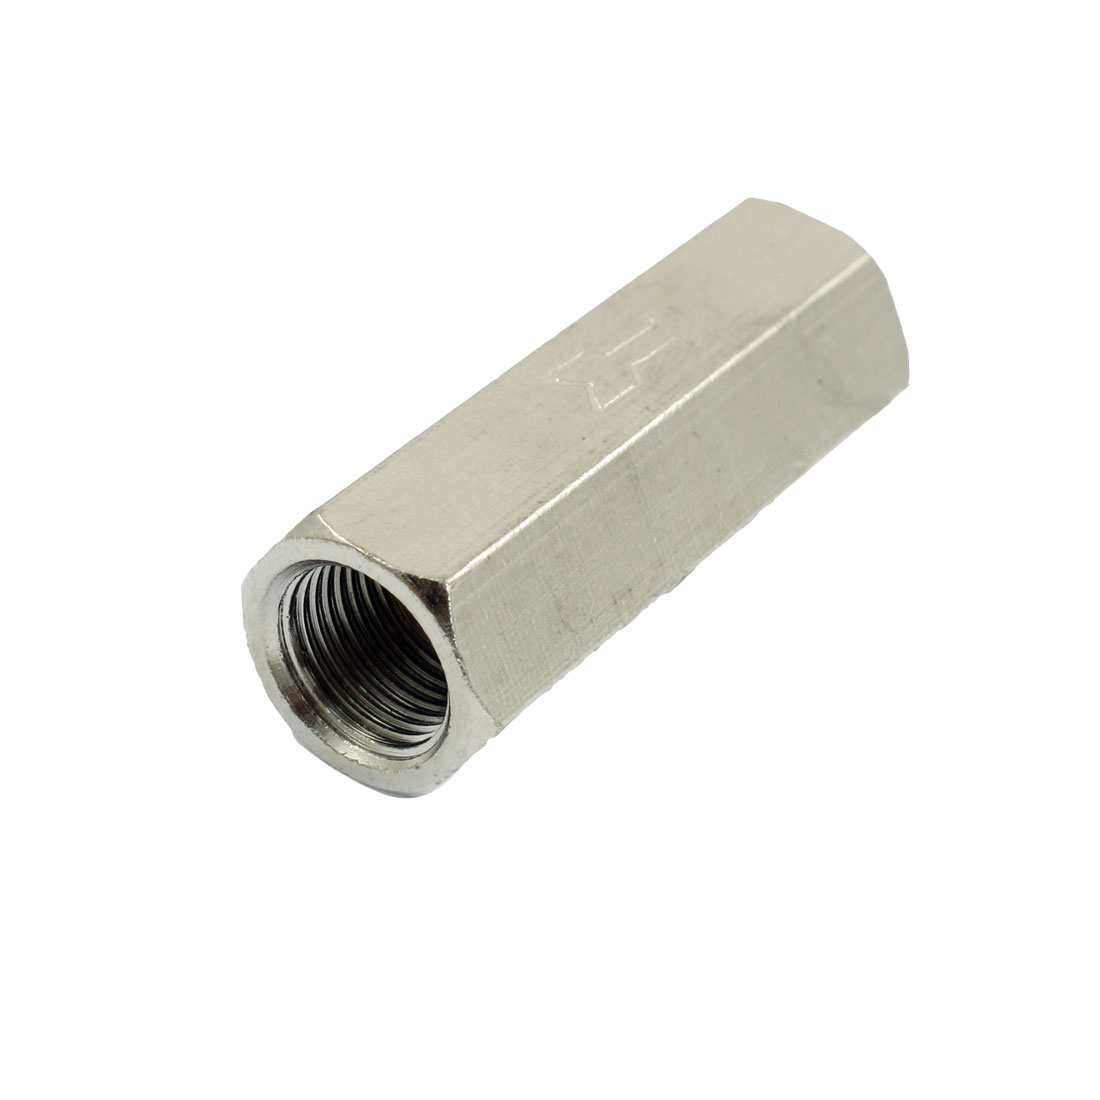 "1/8"" PT Famale Thread Silver Tone Metal Straight One-Way Check Valve"